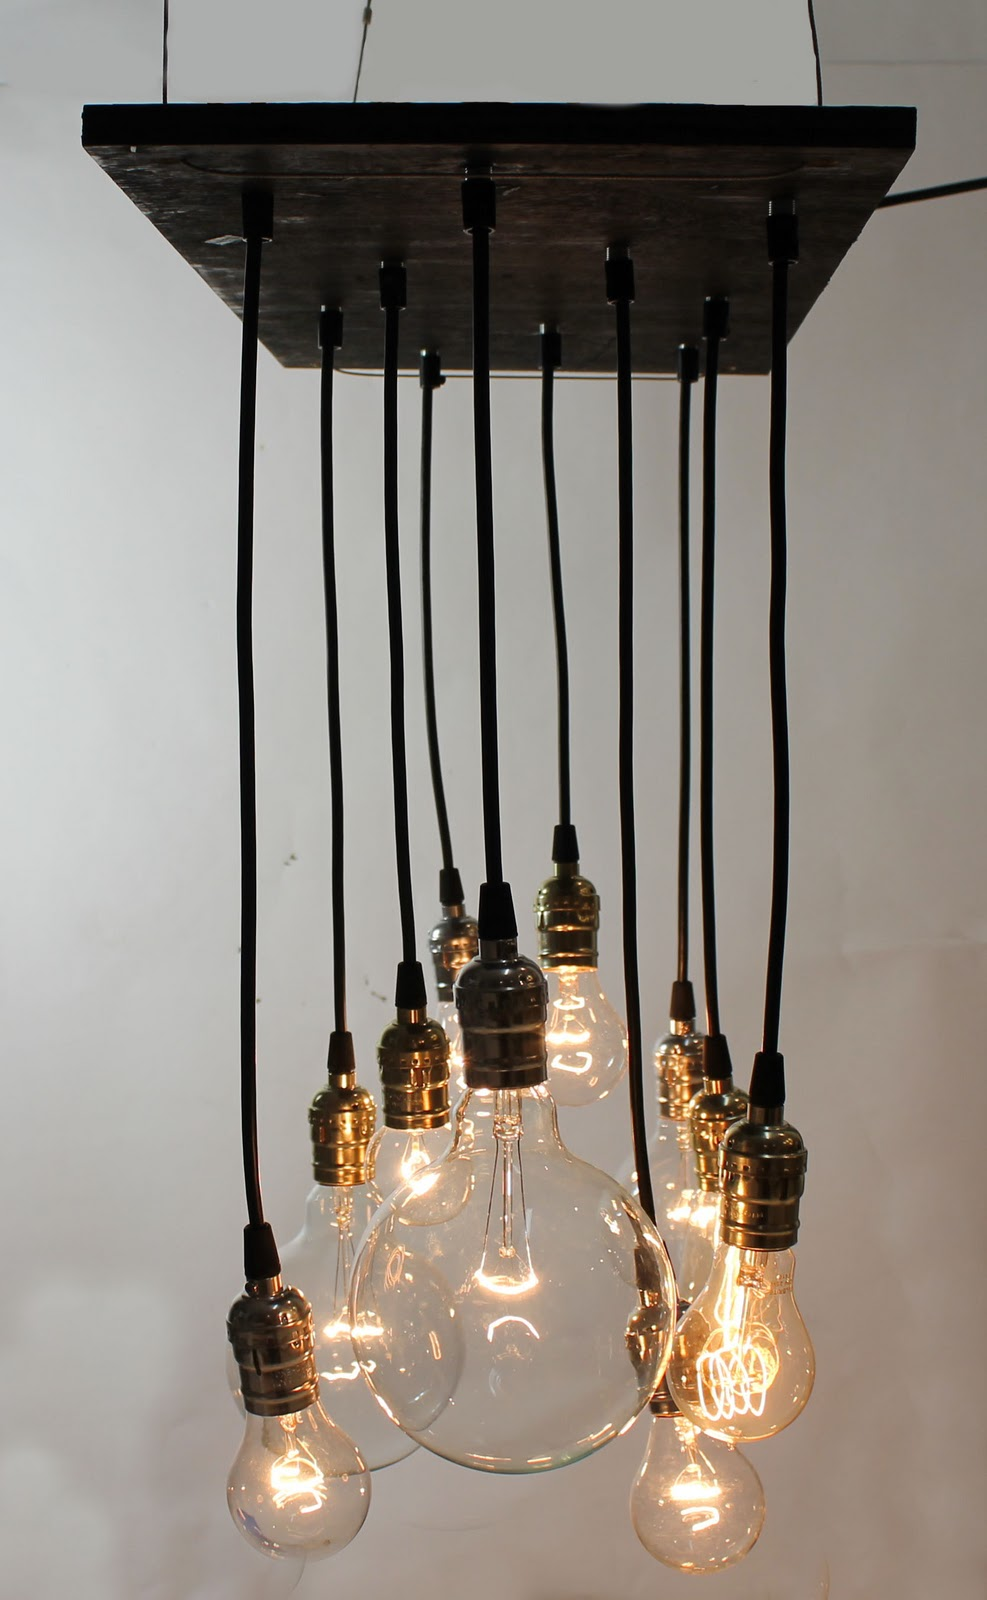 urban chandy modern chandelier design gallery. Black Bedroom Furniture Sets. Home Design Ideas